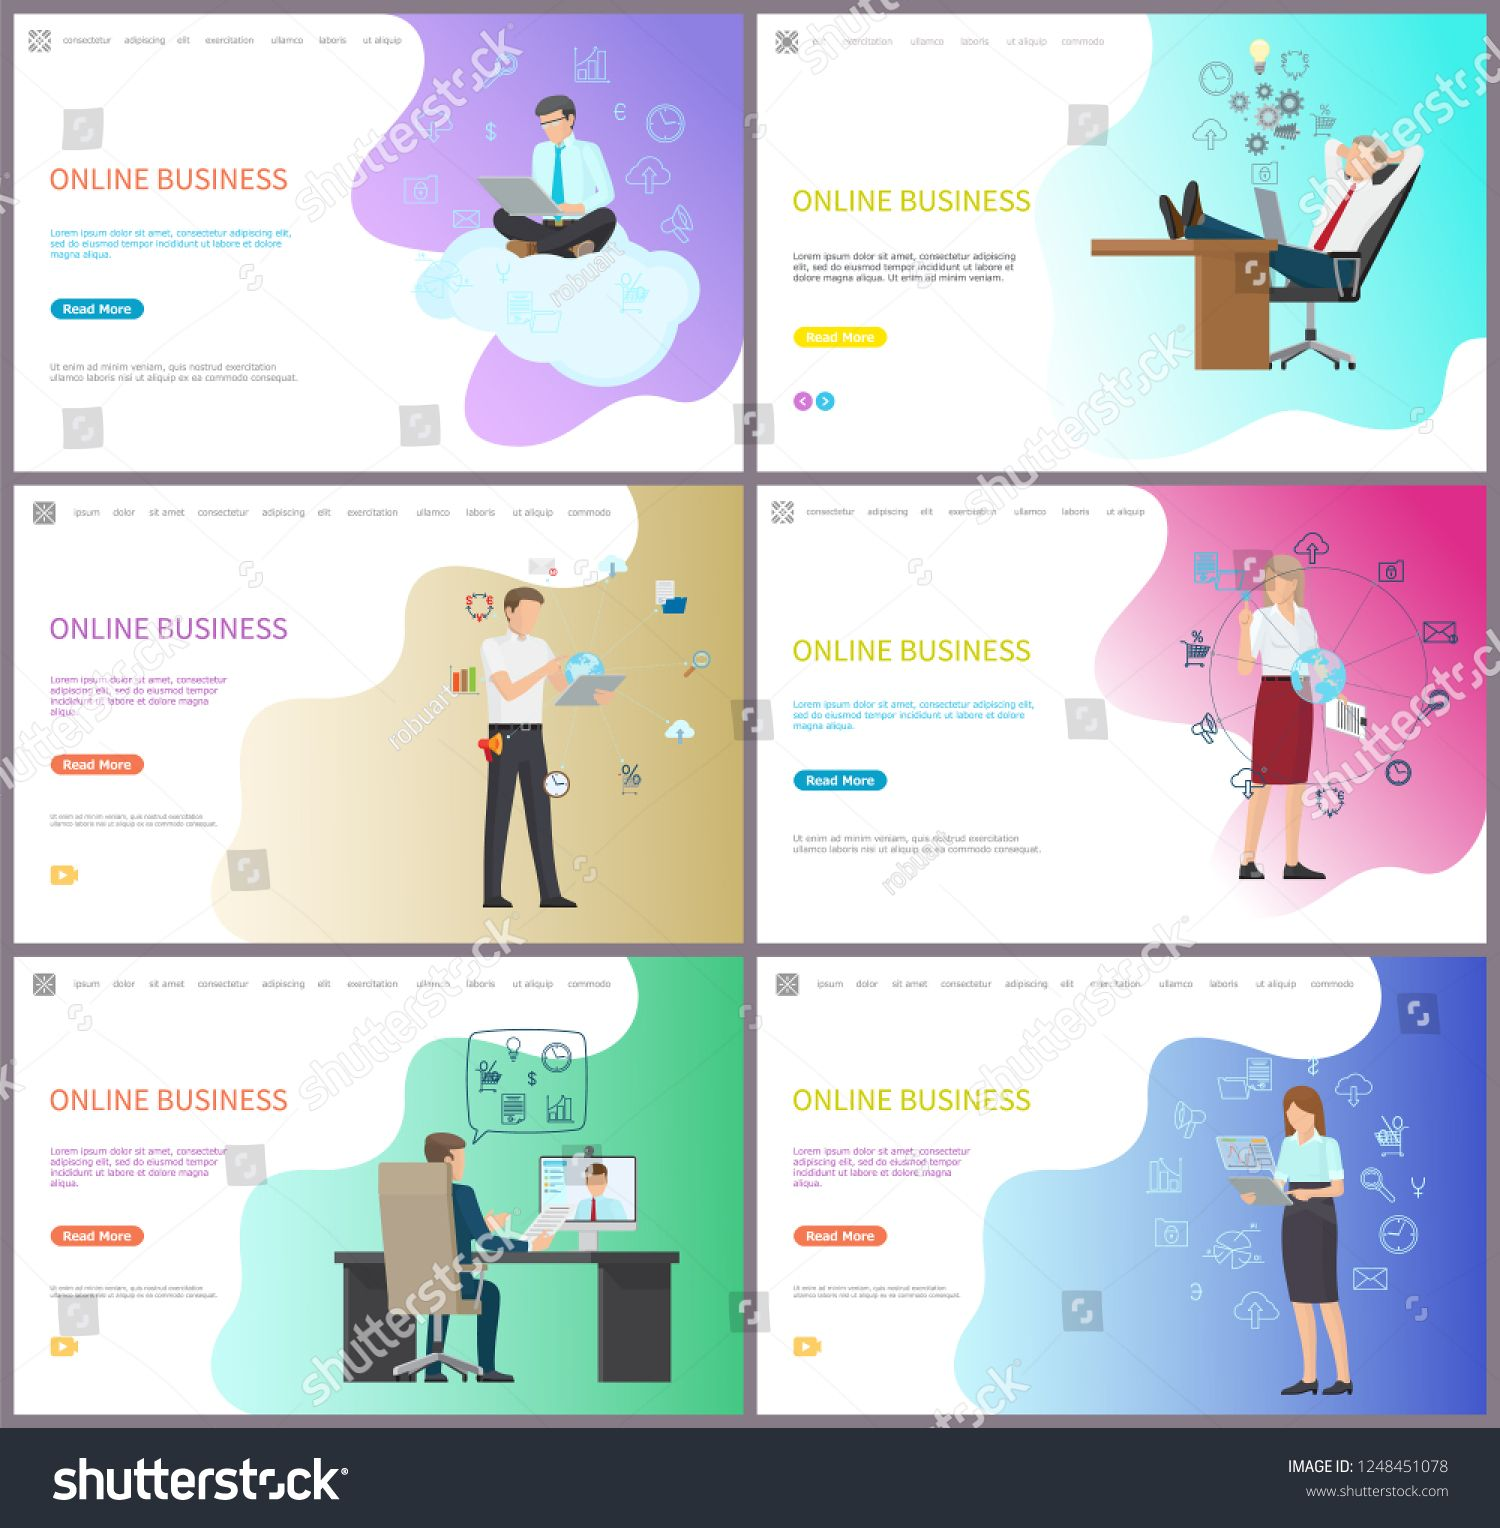 Online Business For Companies And Investors Set Of Posters With